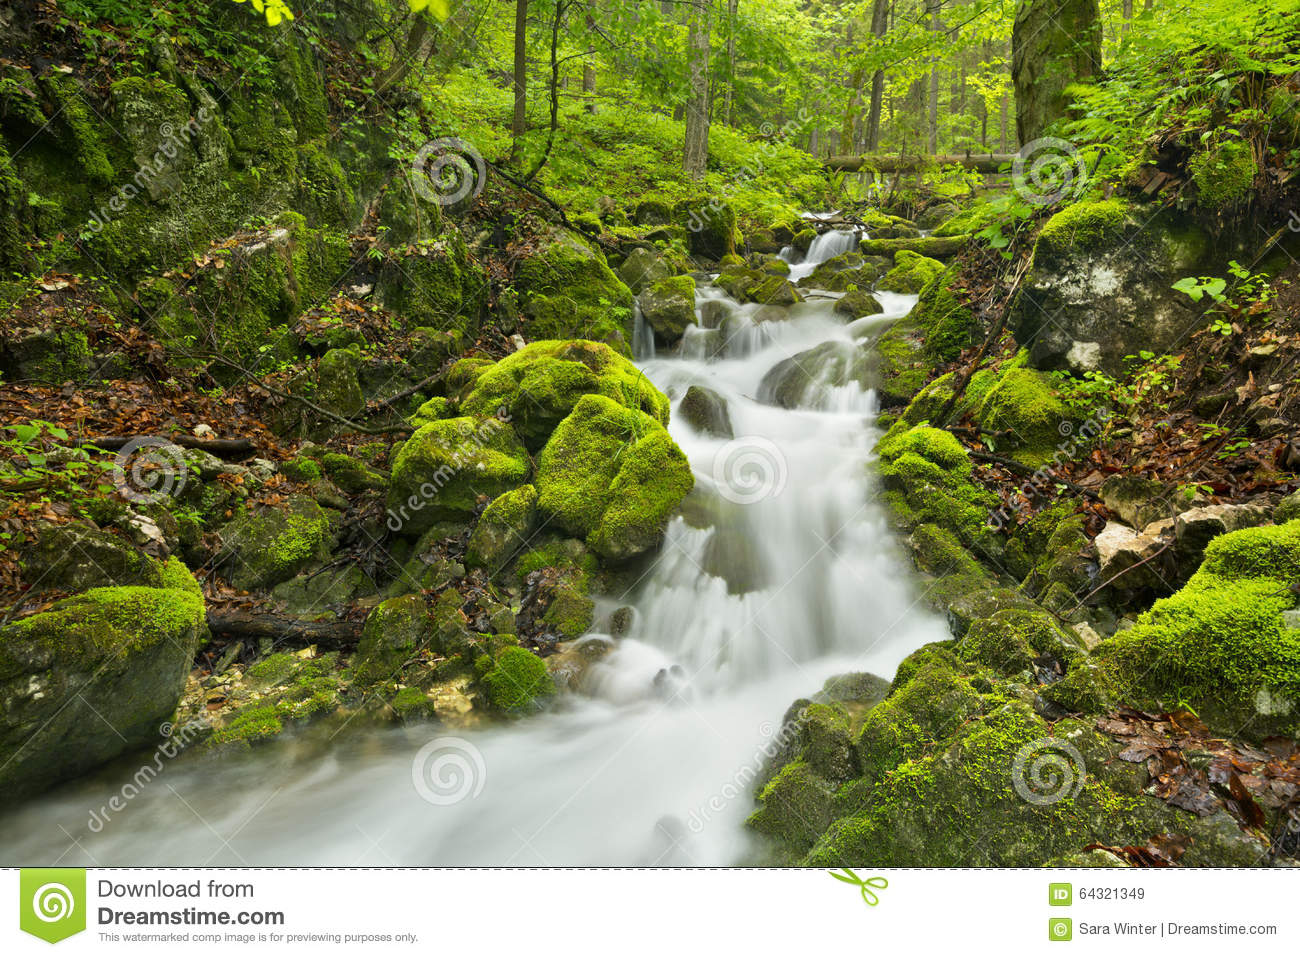 Waterfall In A Lush Gorge In Slovenský Raj, Slovakia Stock Photo.